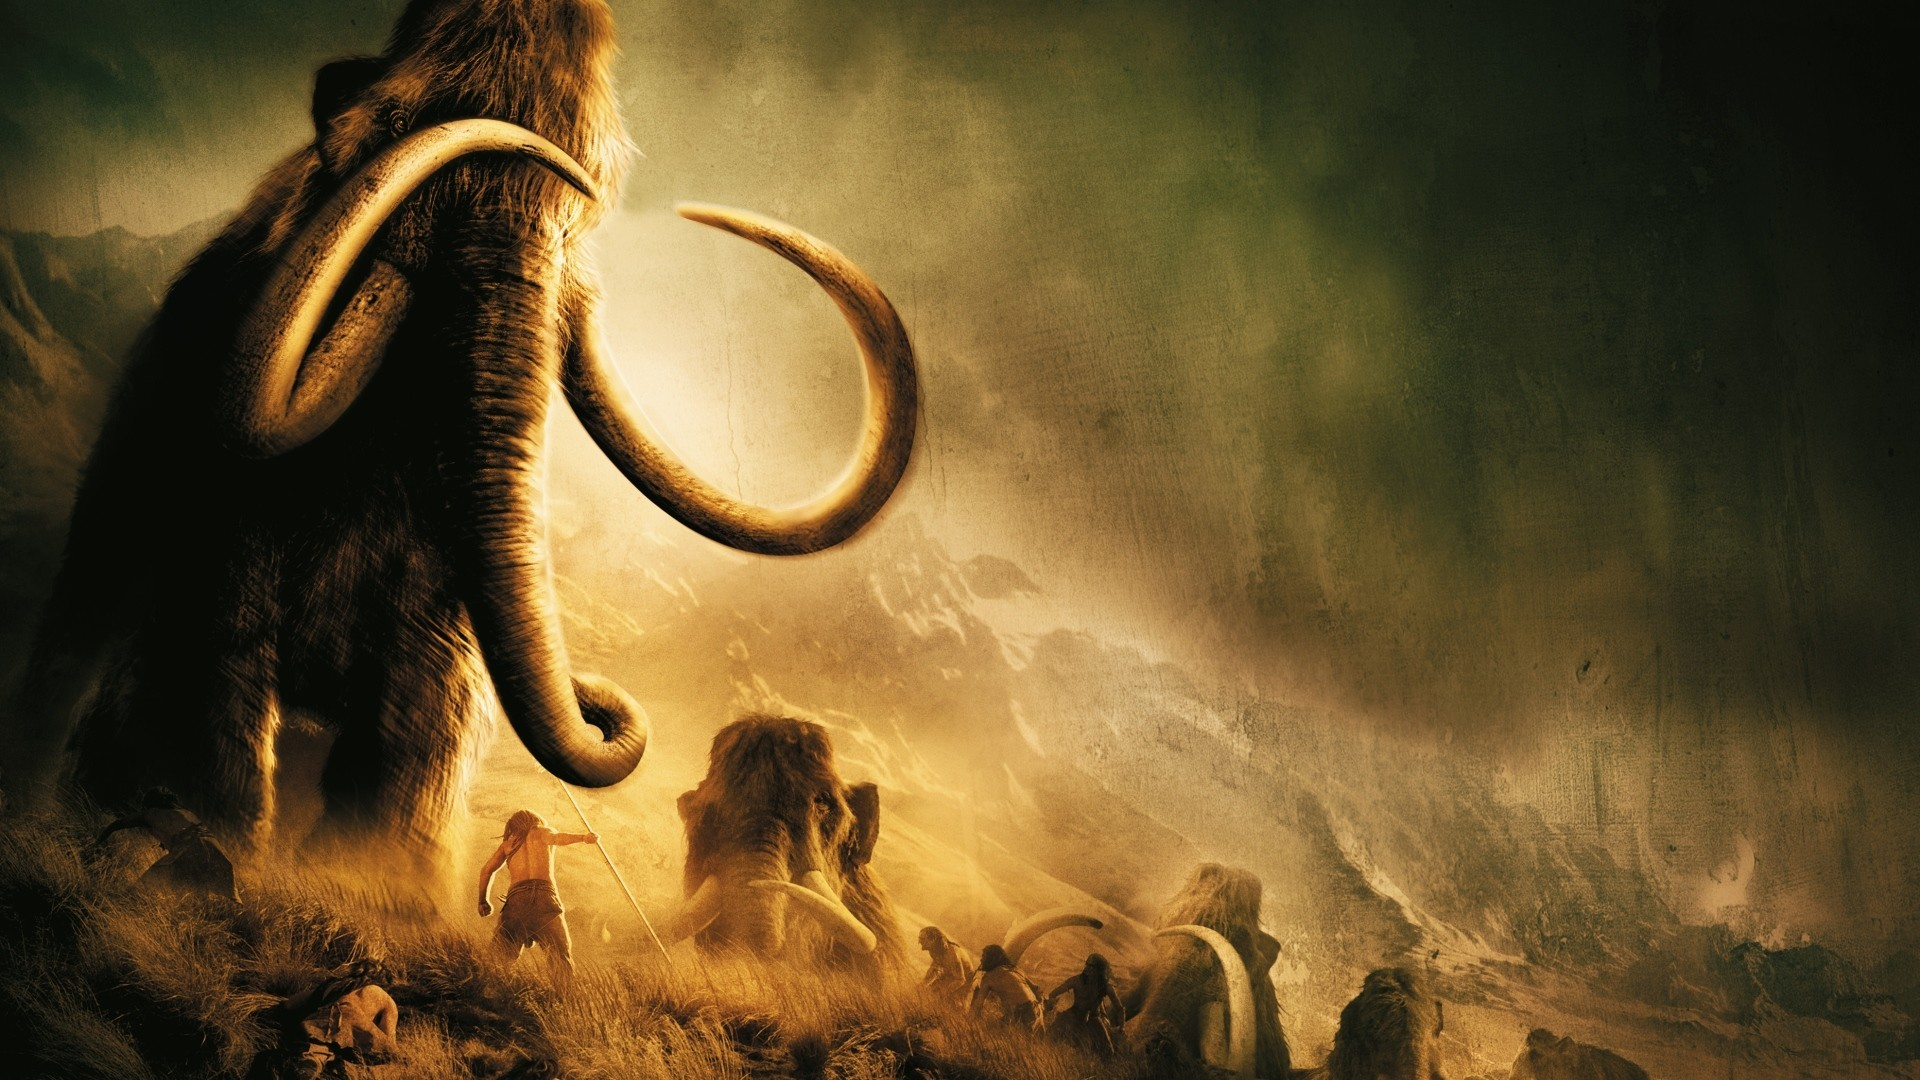 10000 BC Full HD Wallpaper And Background Image